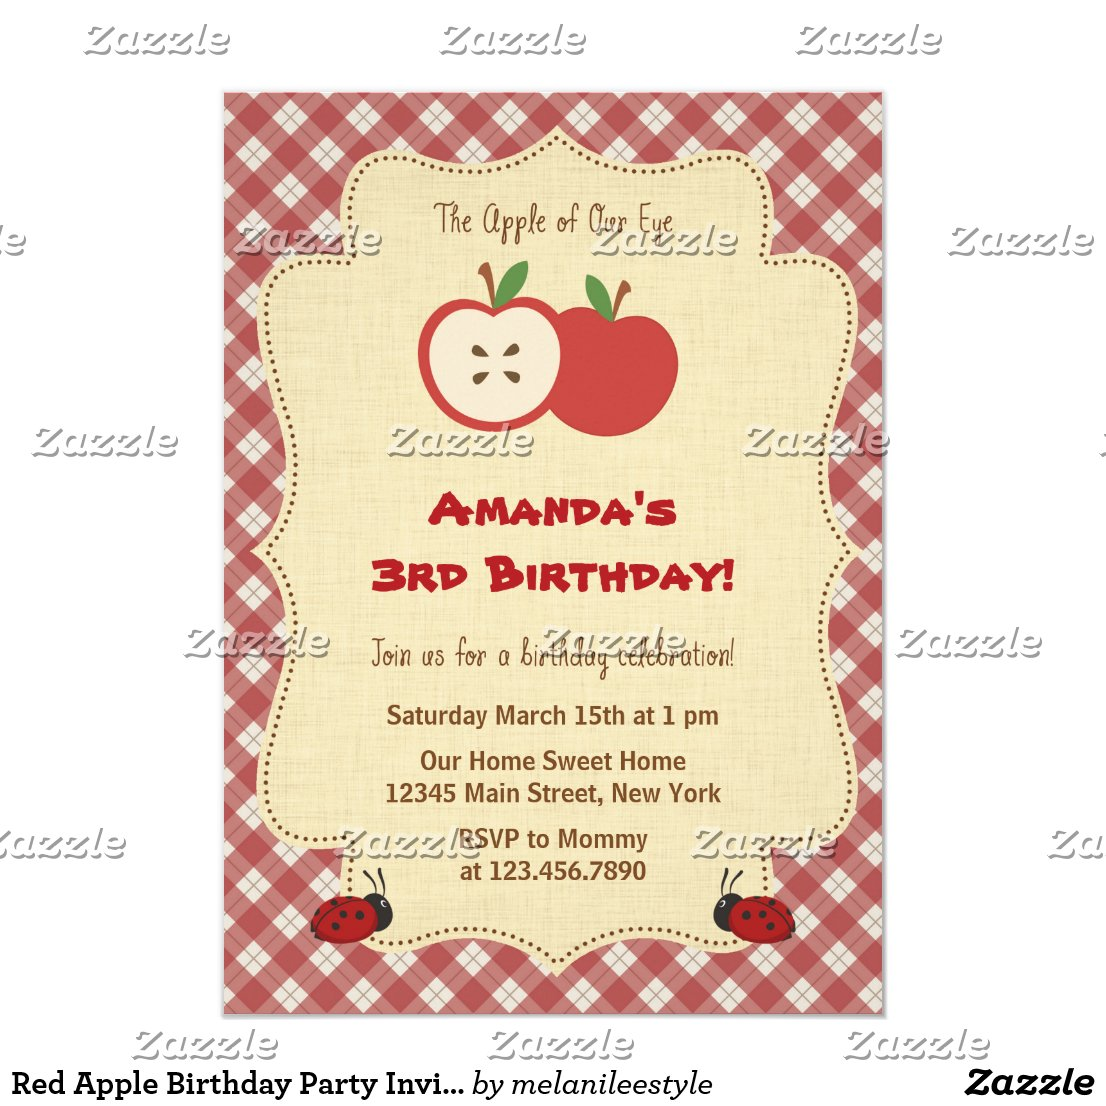 Red Apple Birthday Party Invitation